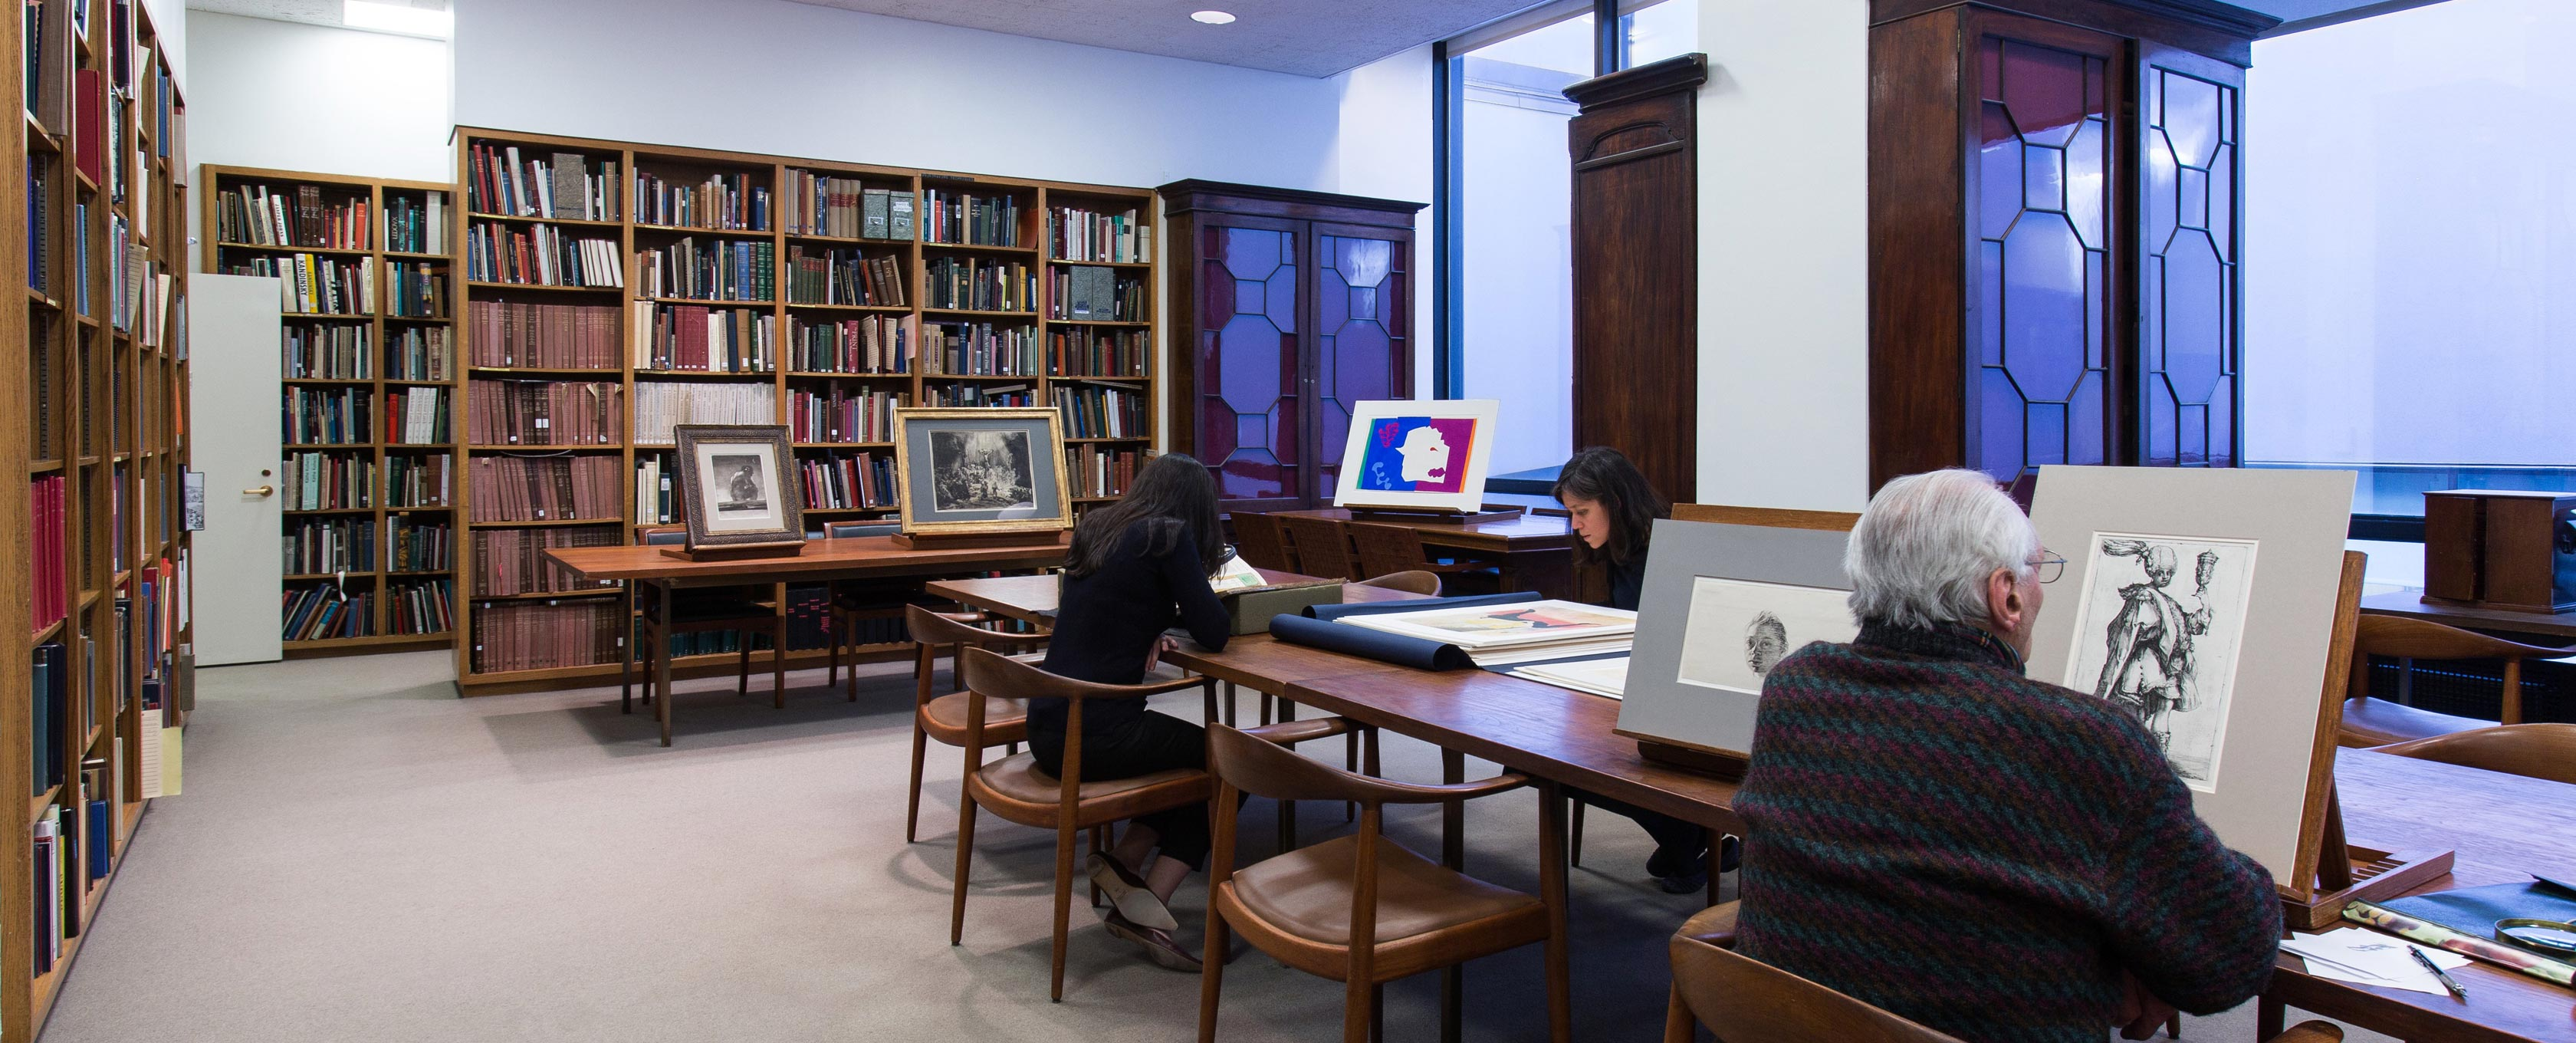 . Study Room for Drawings and Prints   The Metropolitan Museum of Art